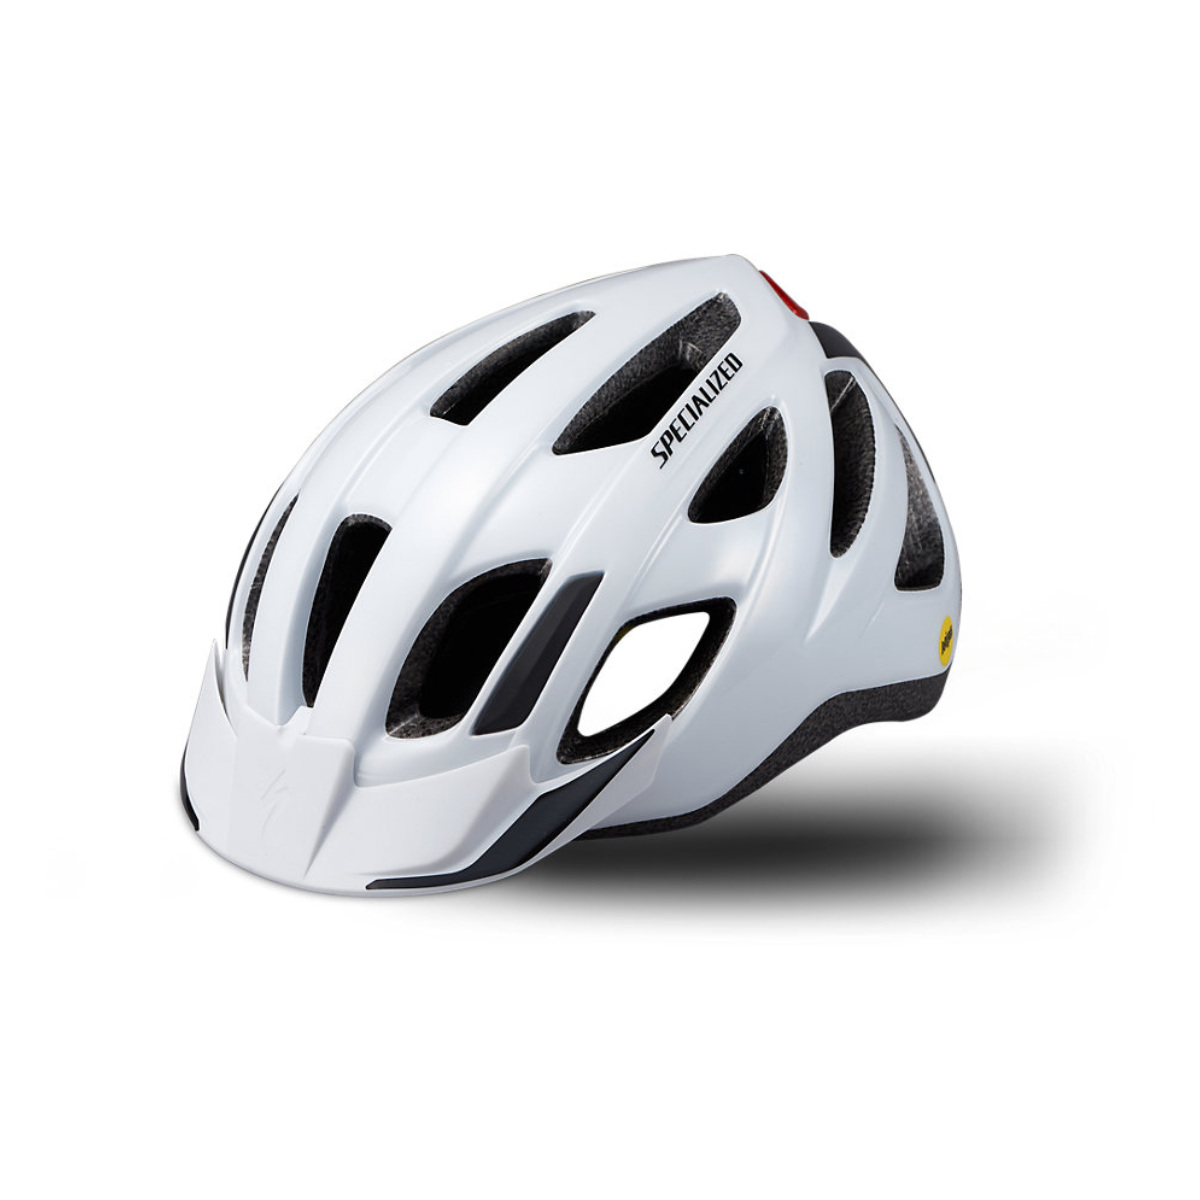 CASQUE SPECIALIZED CENTRO WINTER LED MIPS